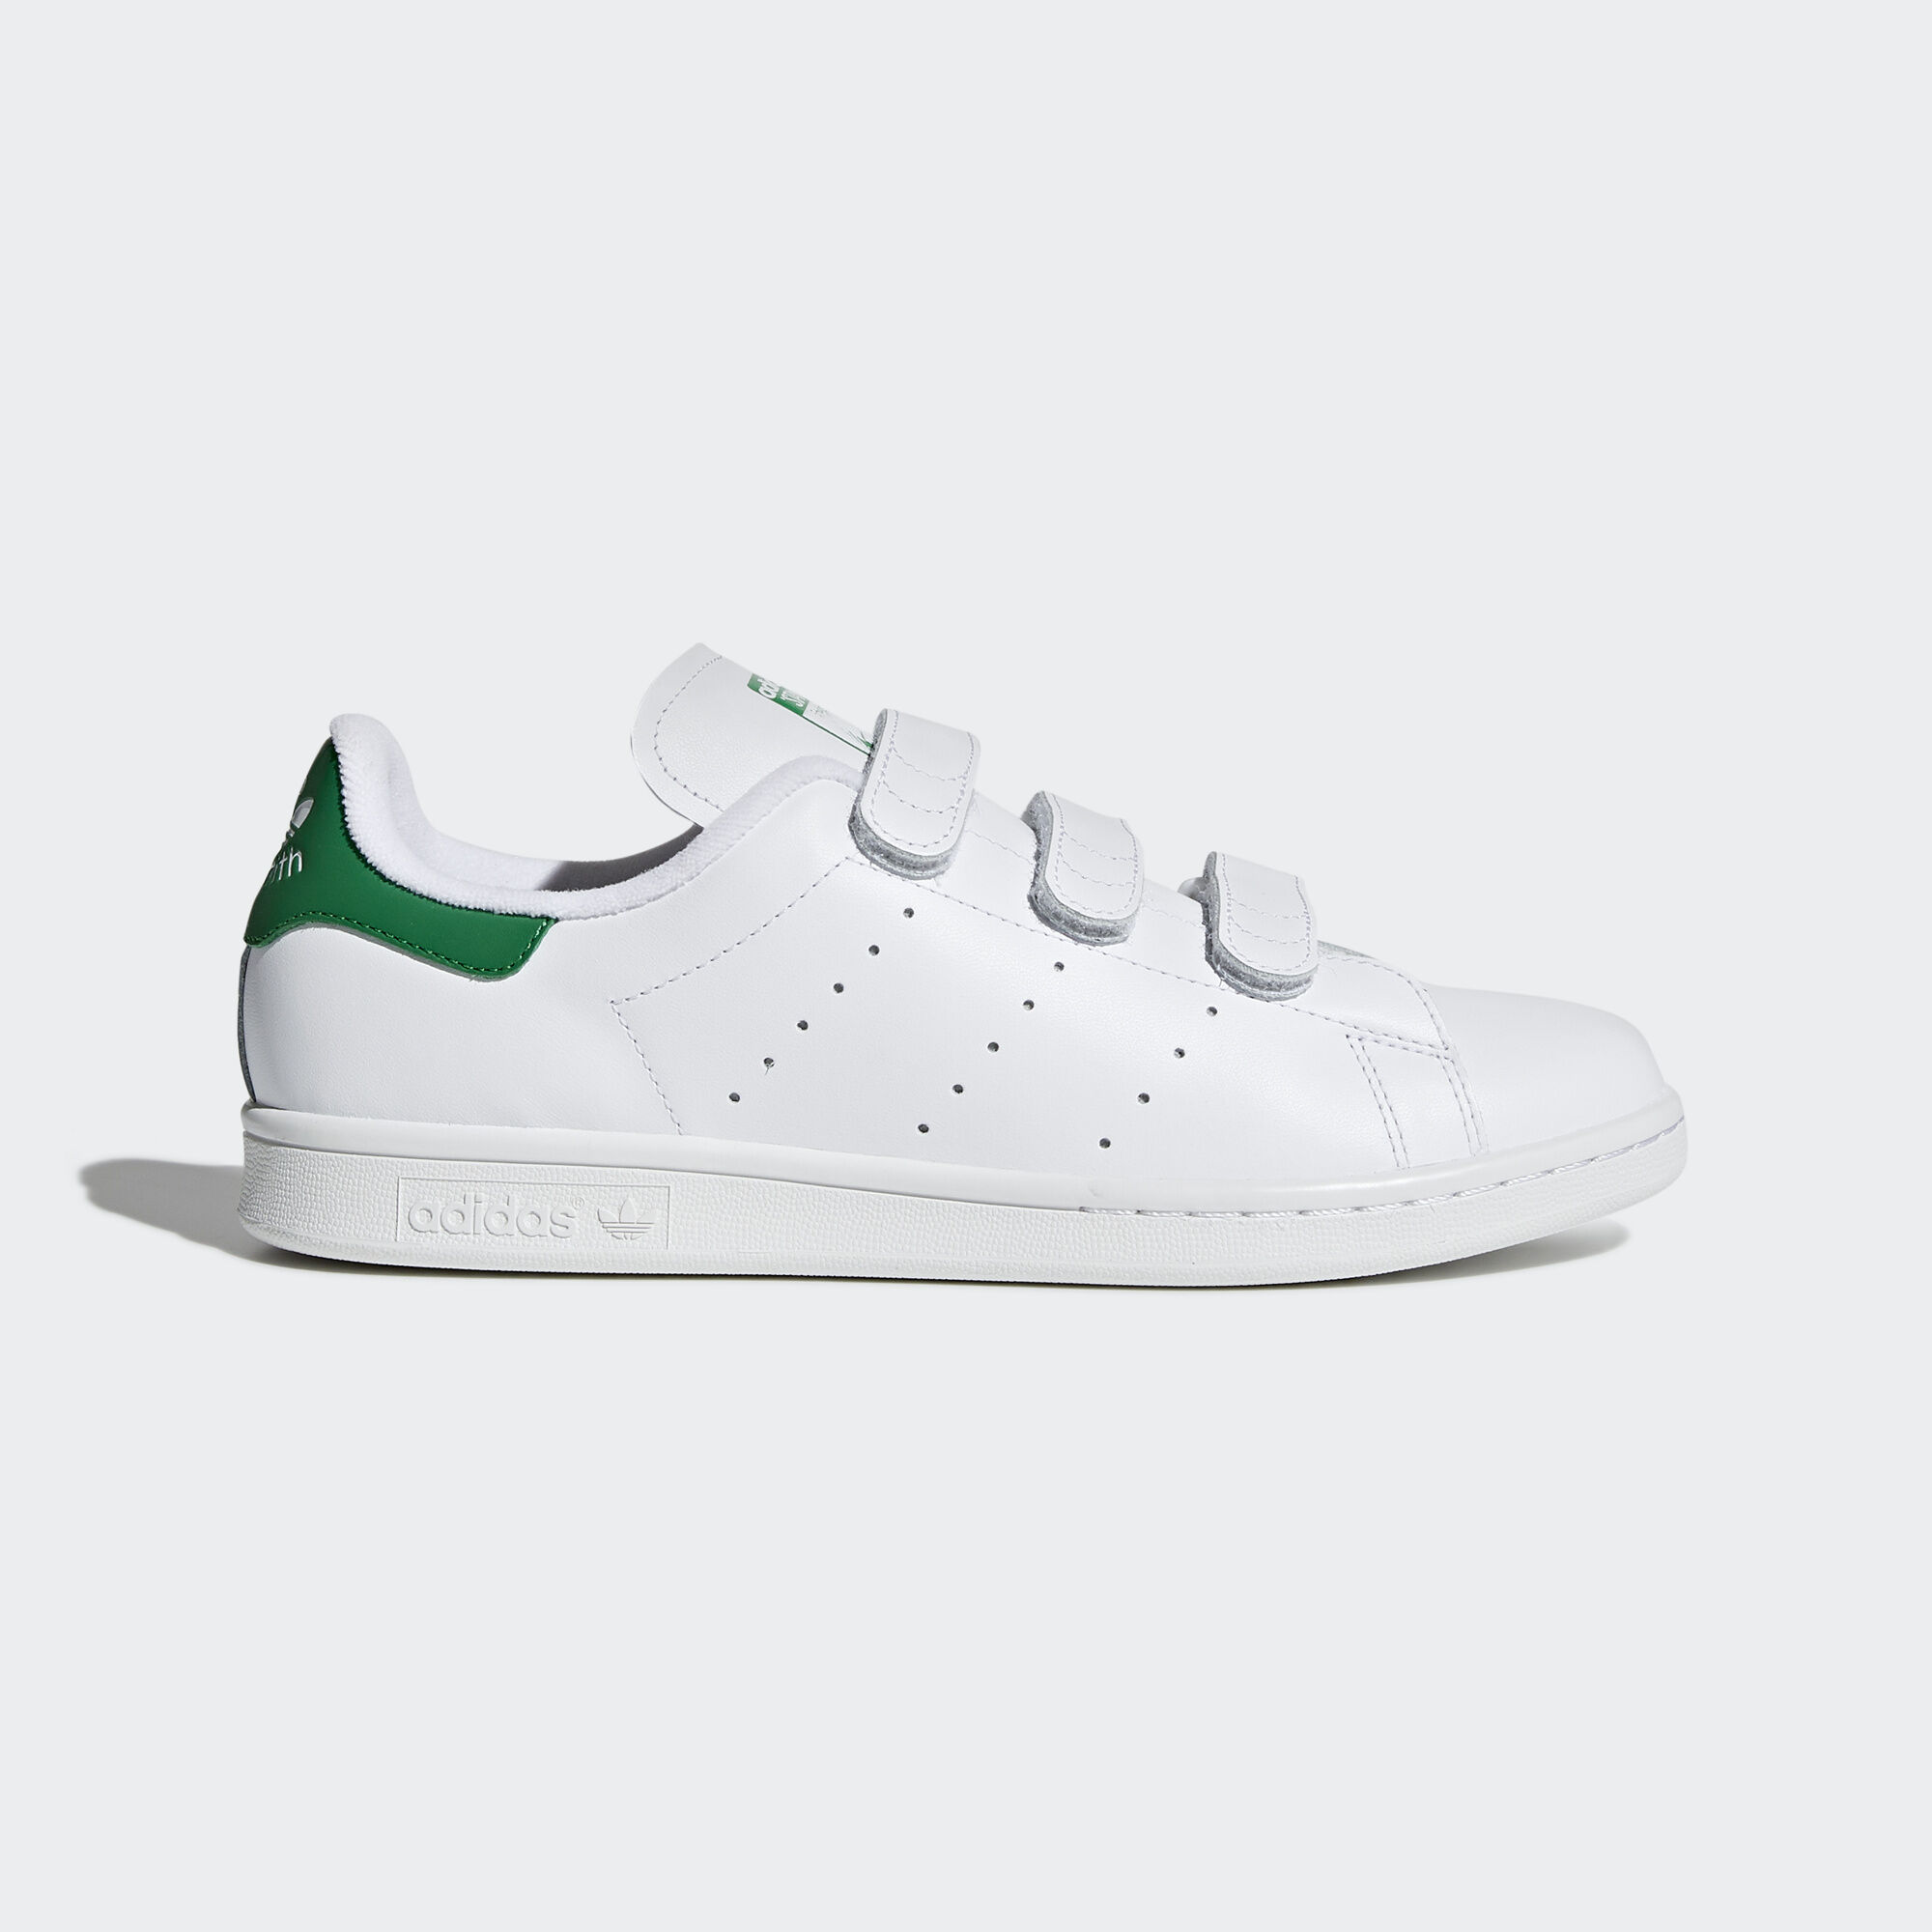 Adidas shirt design your own - Adidas Stan Smith Shoes Running White Ftw Running White Ftw Green S75187